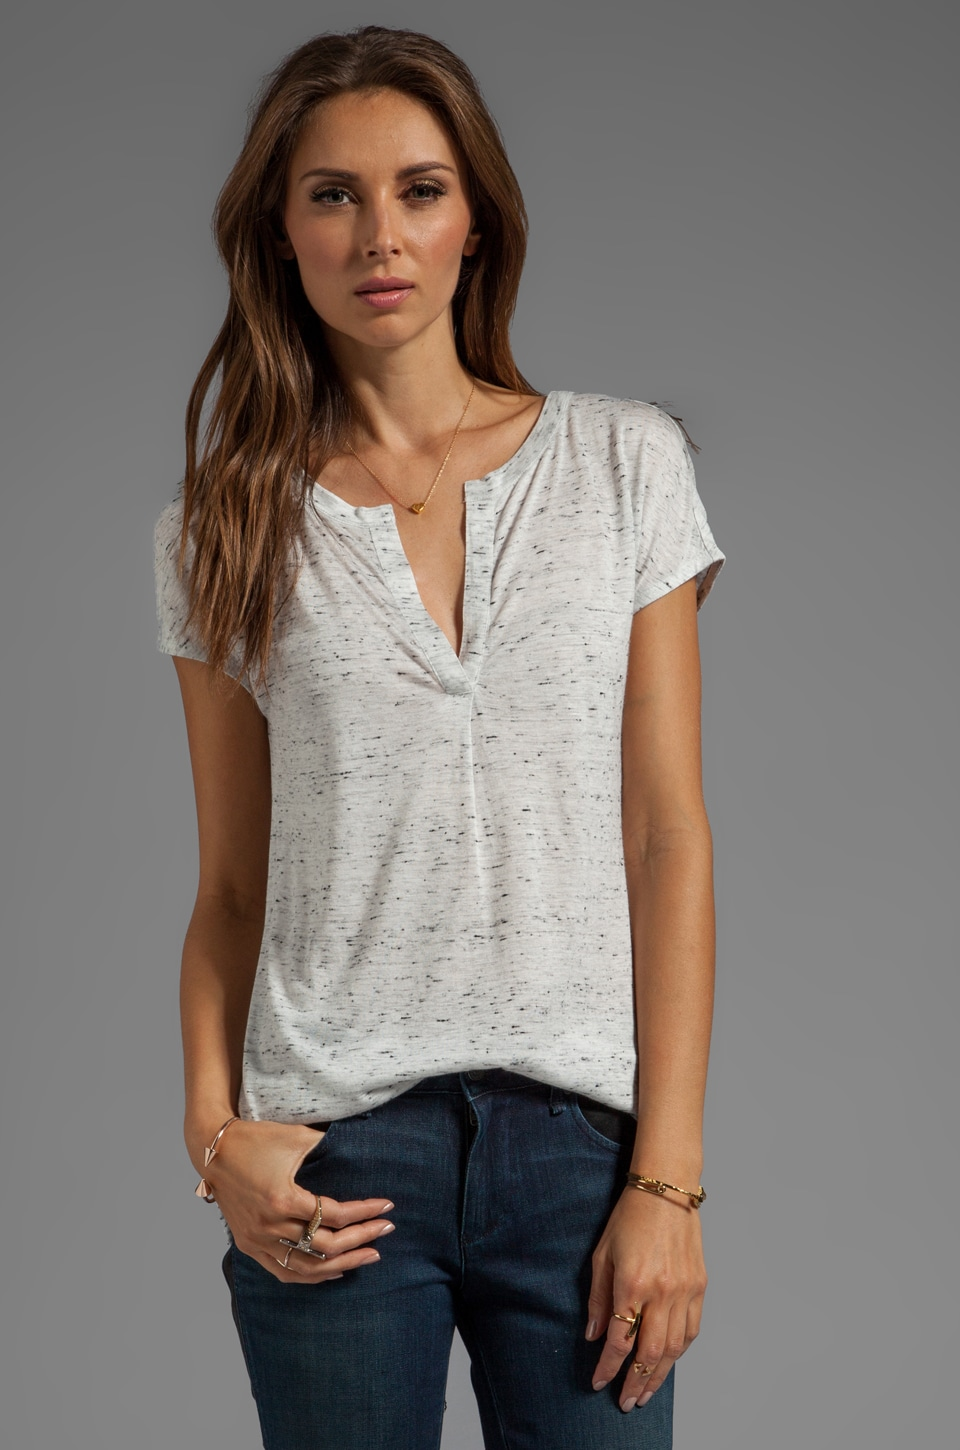 Marc by Marc Jacobs Alicia Jersey Top in Antique White Melange